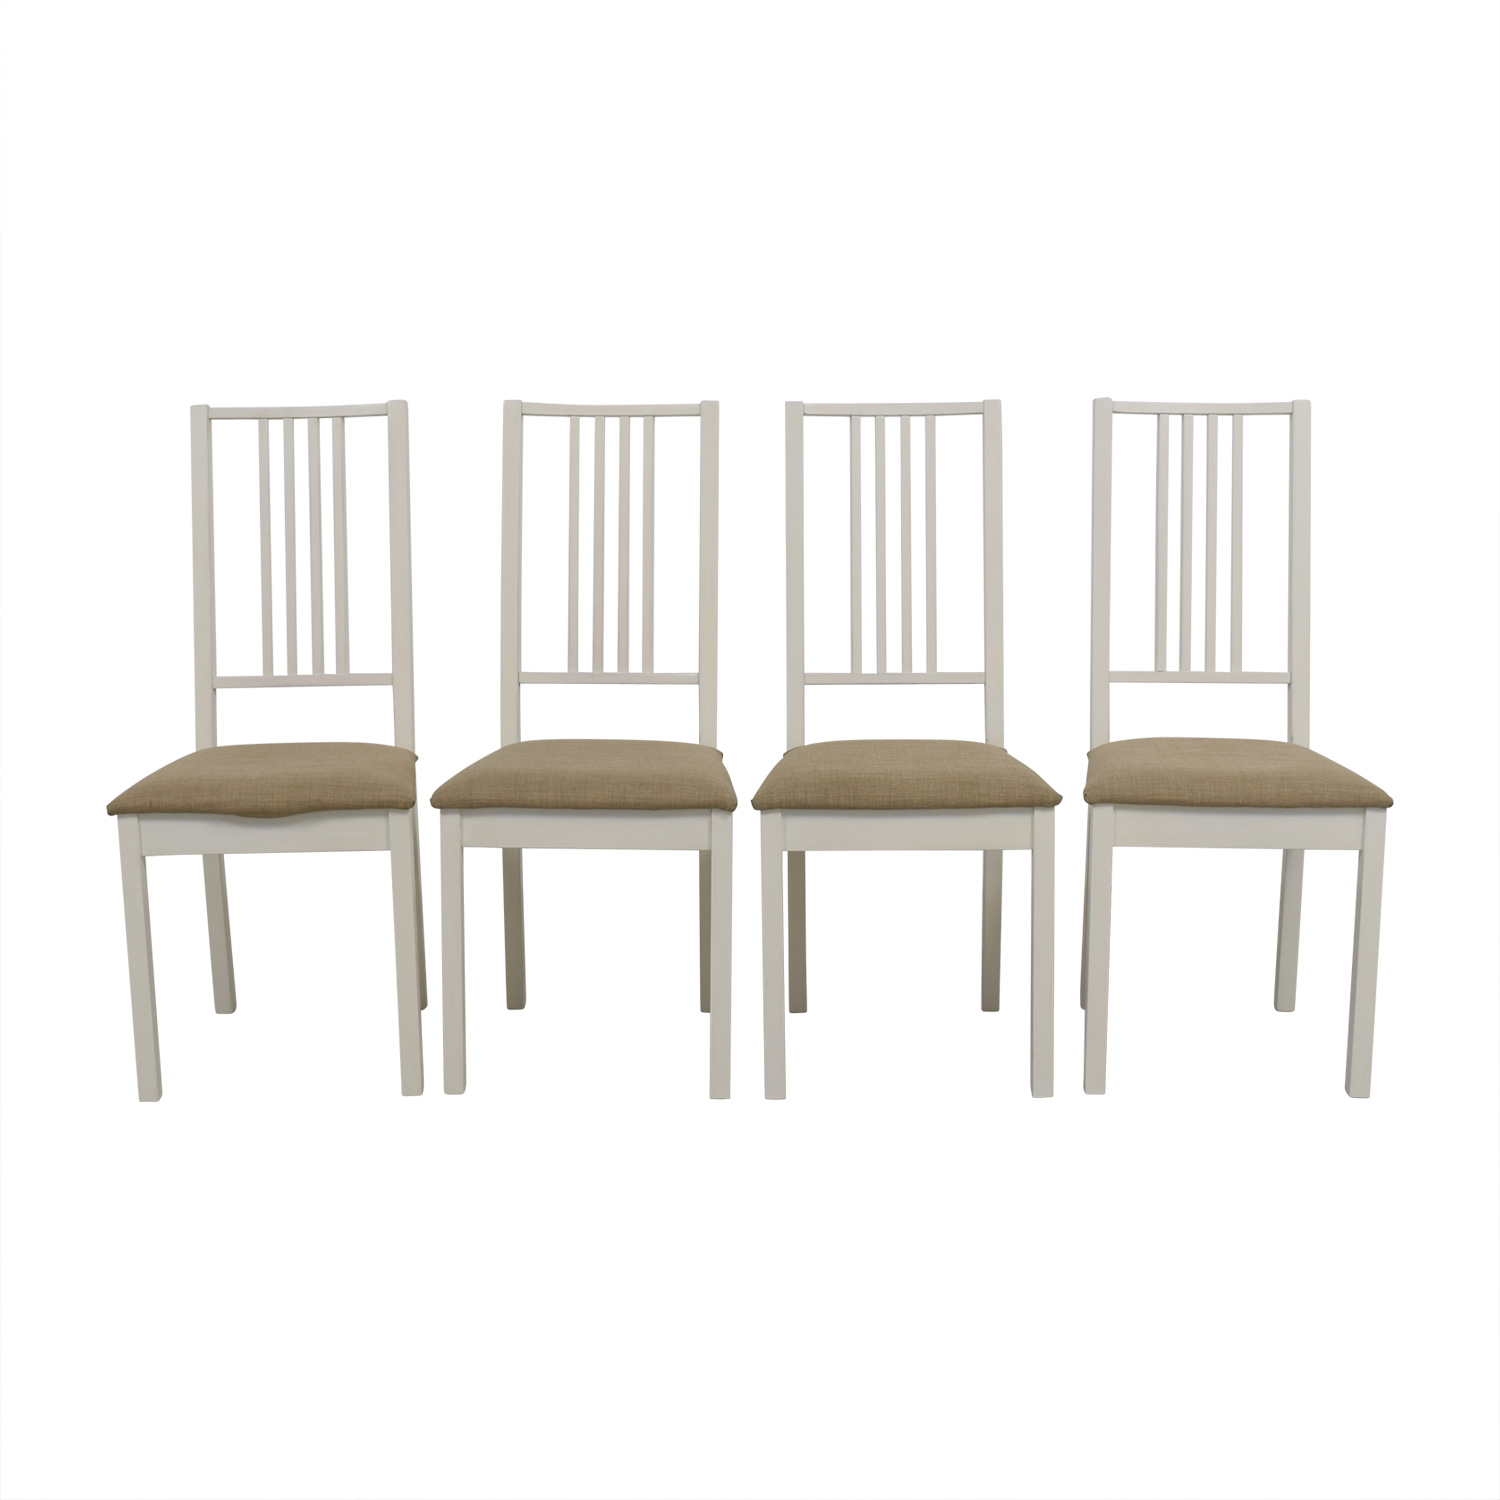 Ikea White With Tan Upholstered Dining Chairs Coupon